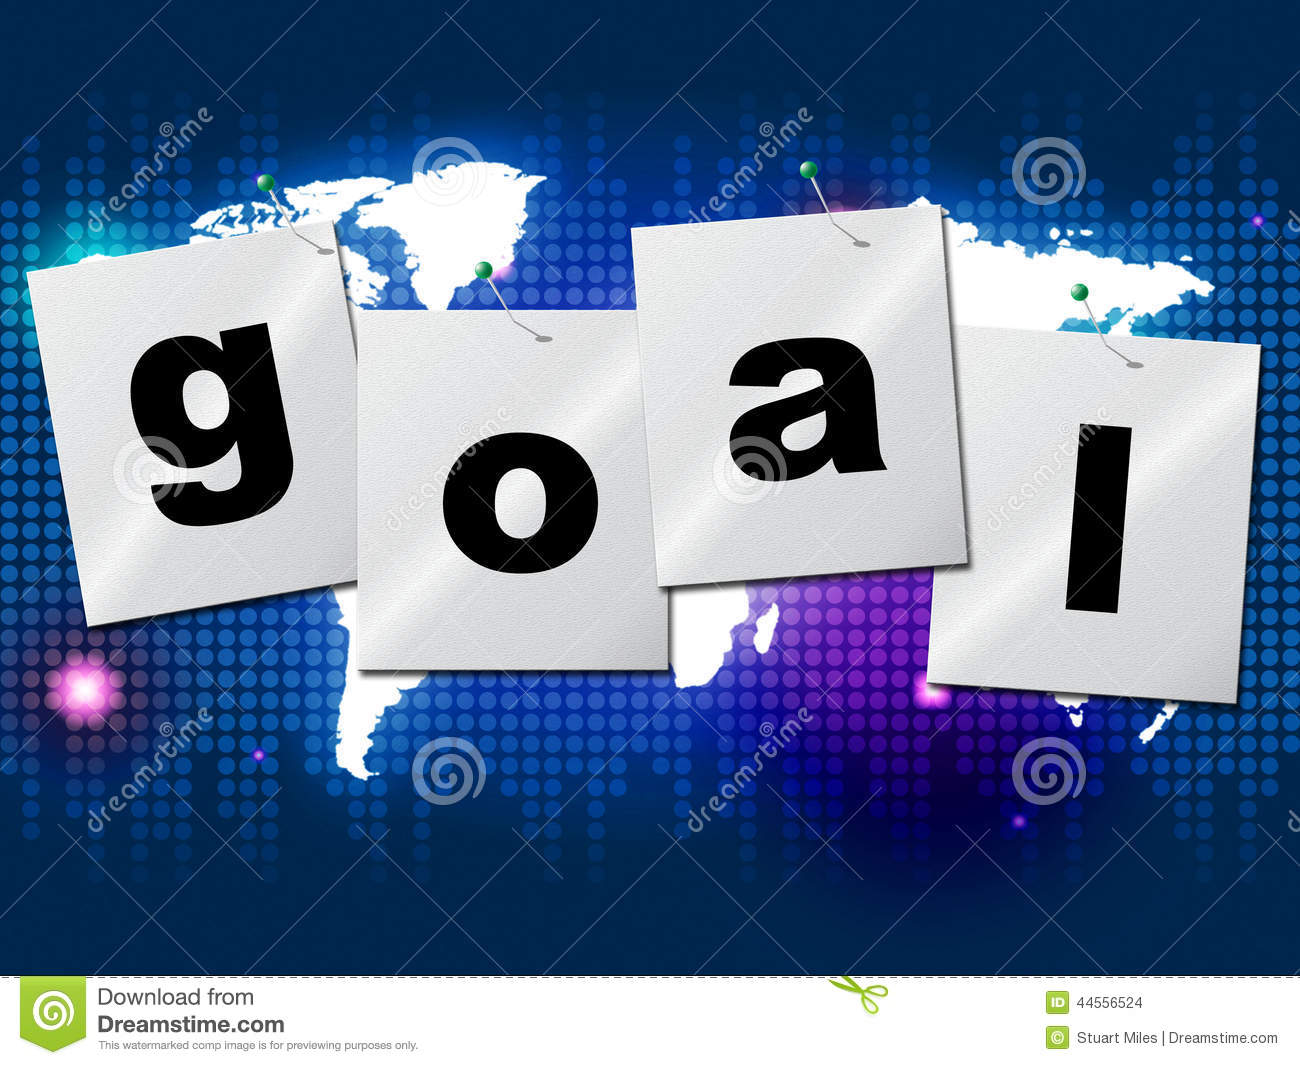 goals and aspirations for the future essay Essays on goals for the future free essay for 'career goals essays download and aspirations essays on goals, discuss your dream essay on future goals nhl.